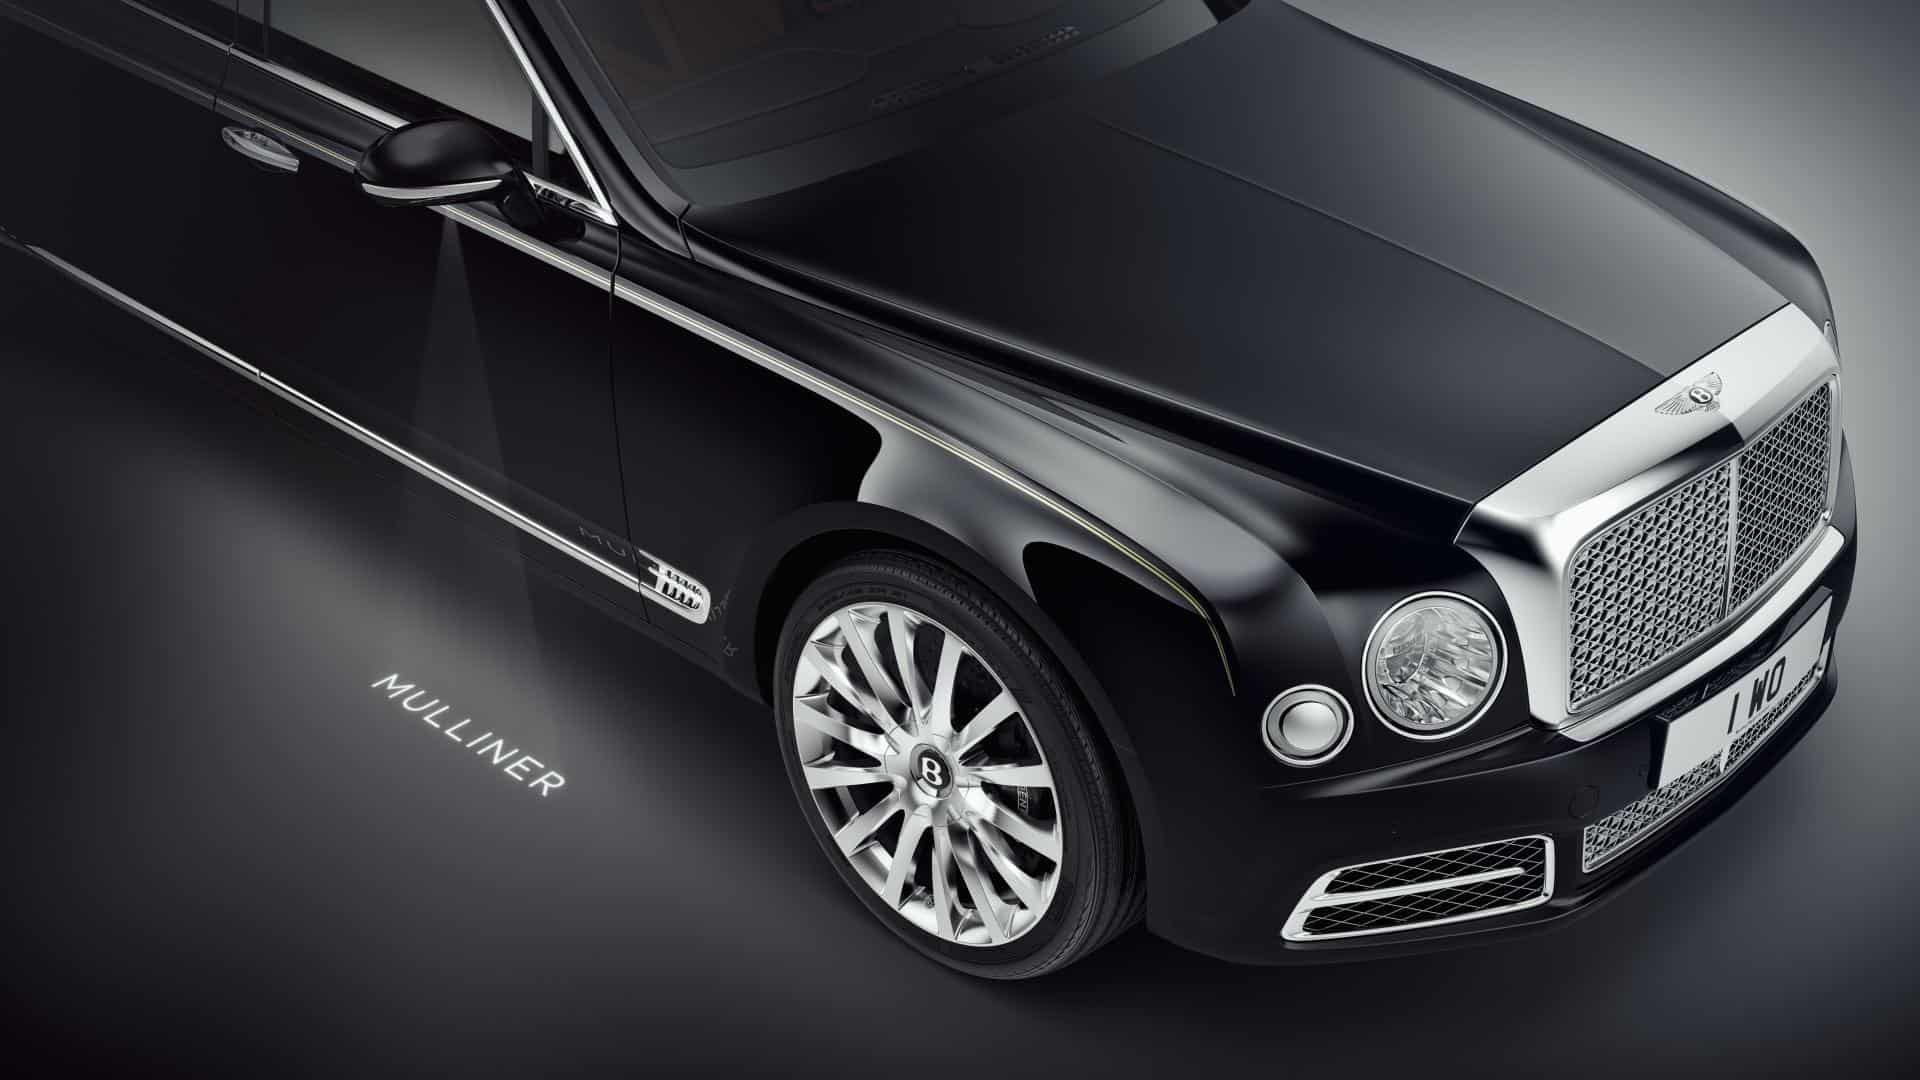 Bentley Mulsanne Extended Wheelbase for China 2